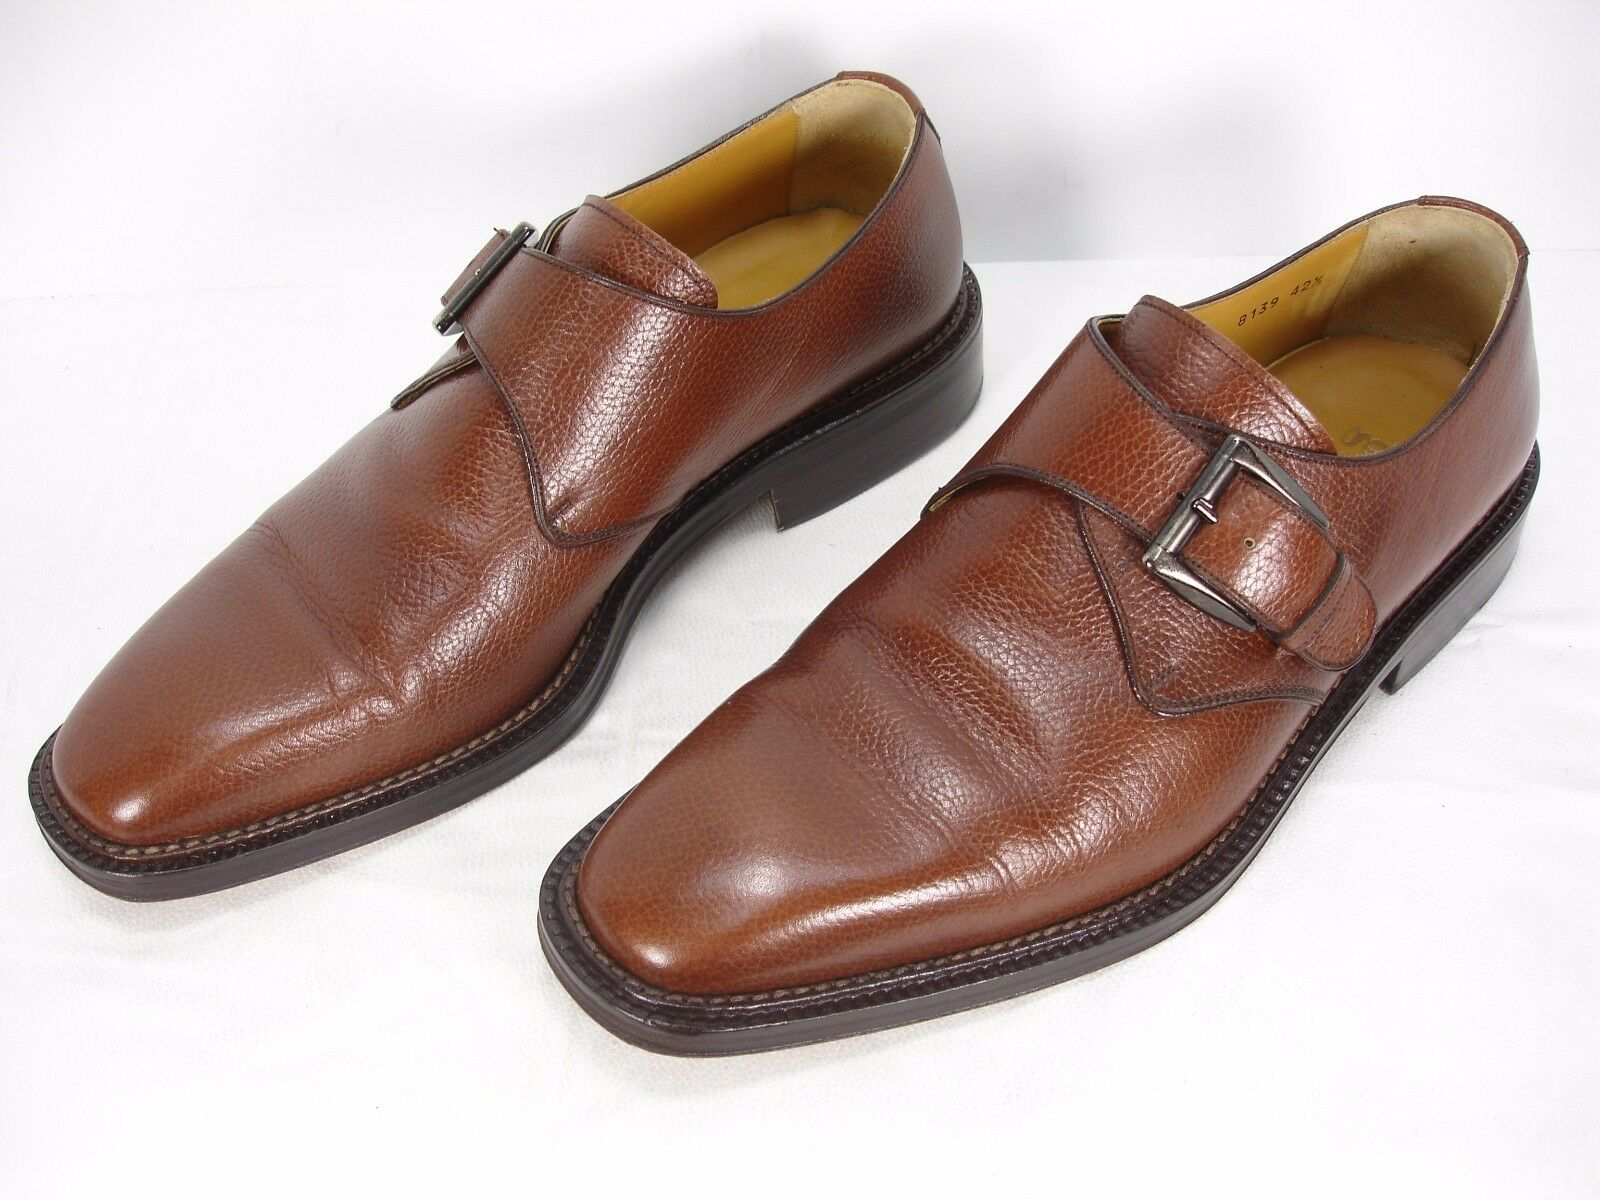 GRANT BROWN PEBBLE LEATHER MONK STRAP OXFORD DRESS SHOES MEN'S 42.5